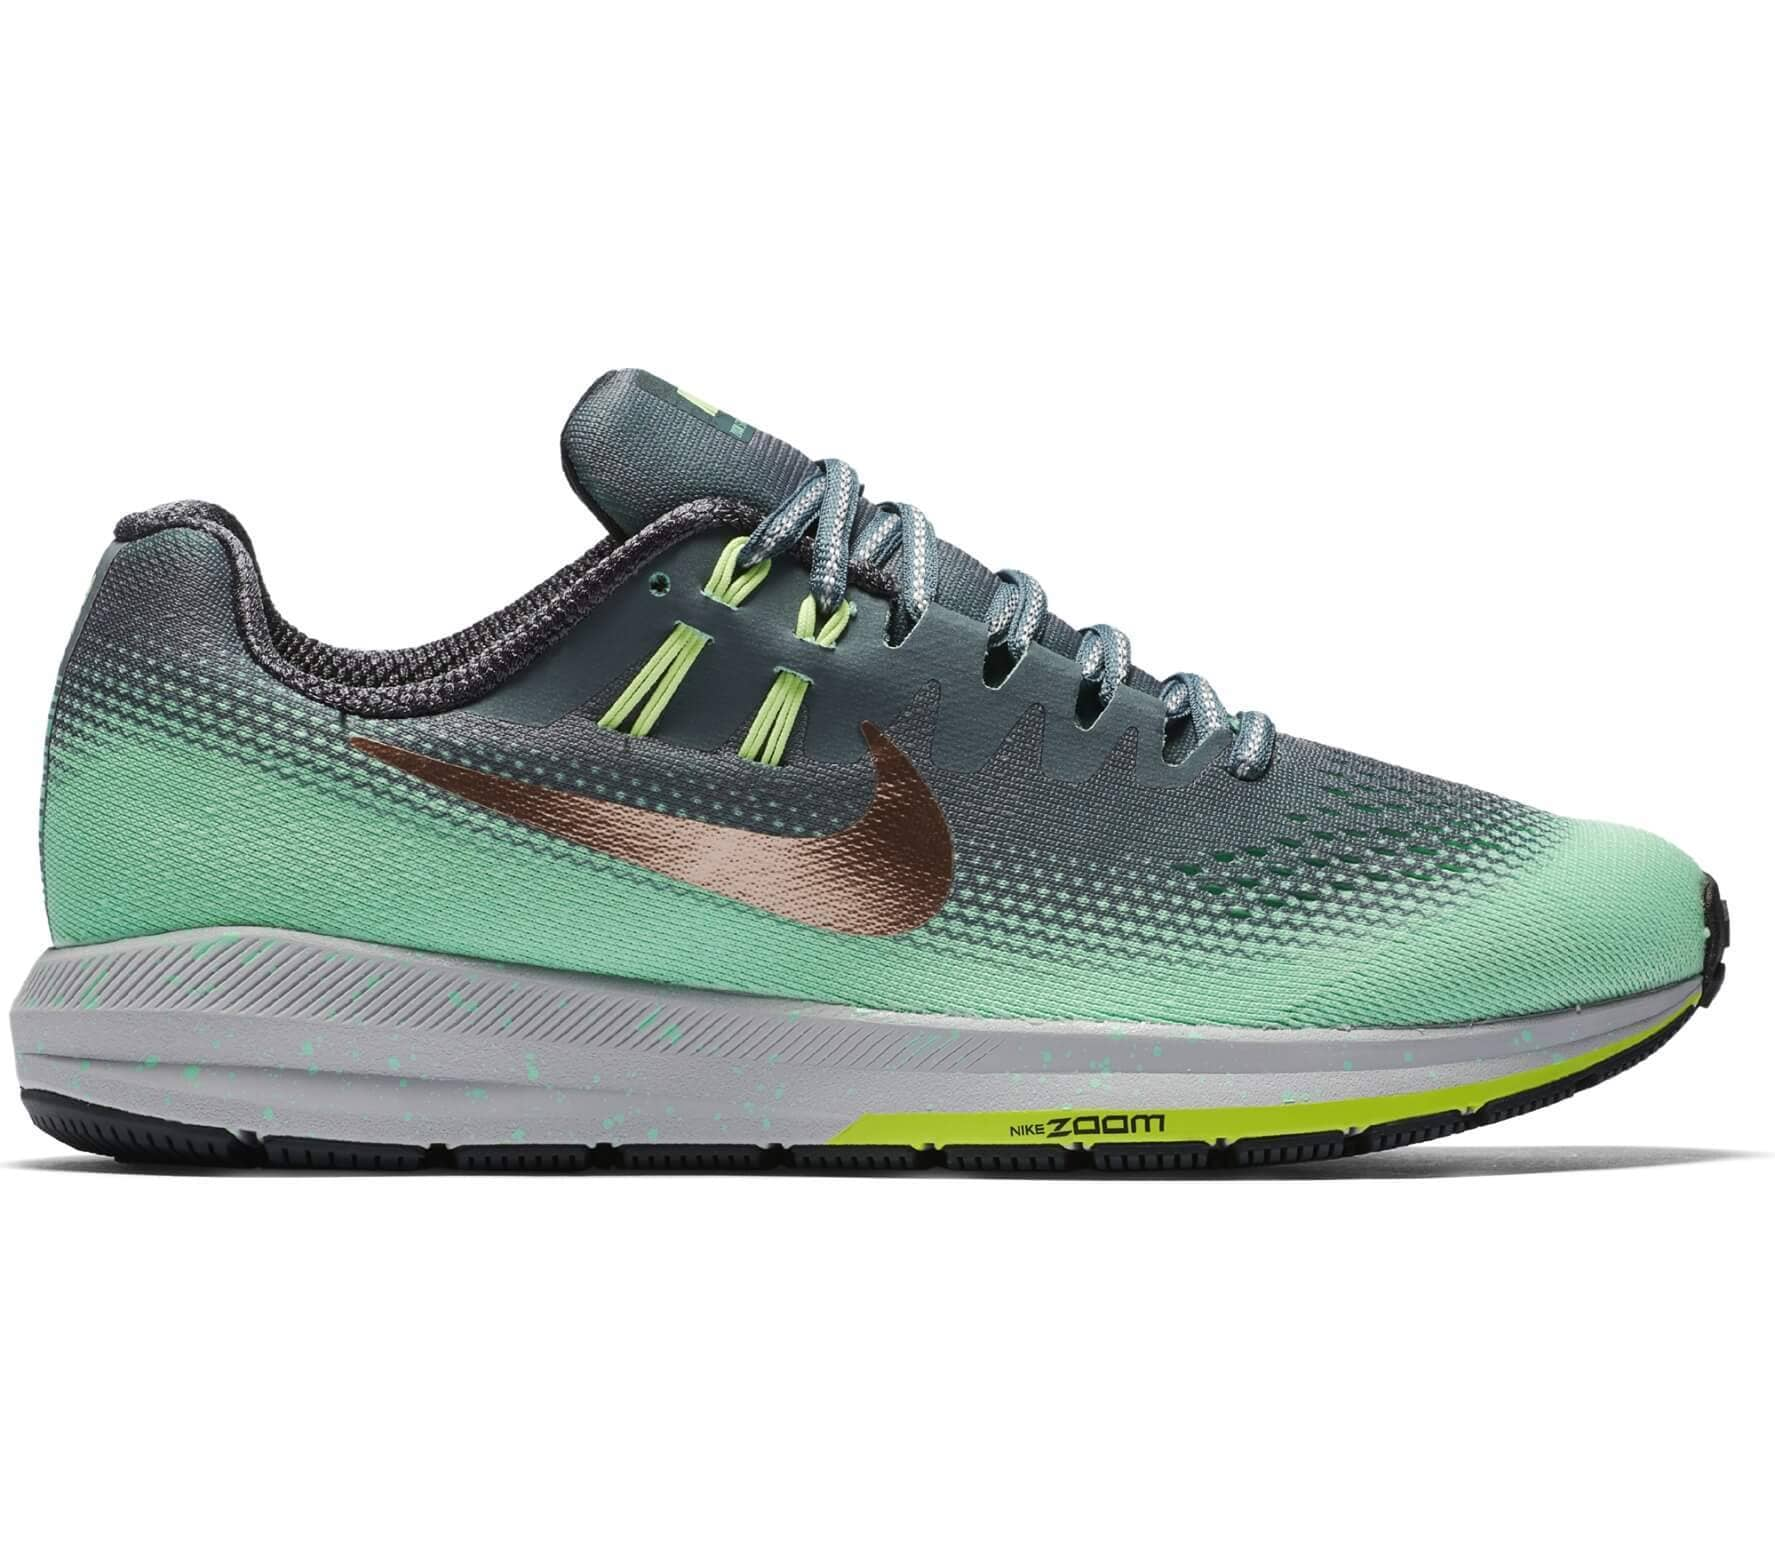 8d01f73f0 Nike - Air Zoom Structure 20 Shield zapatillas de running para mujer (verde  oscuro